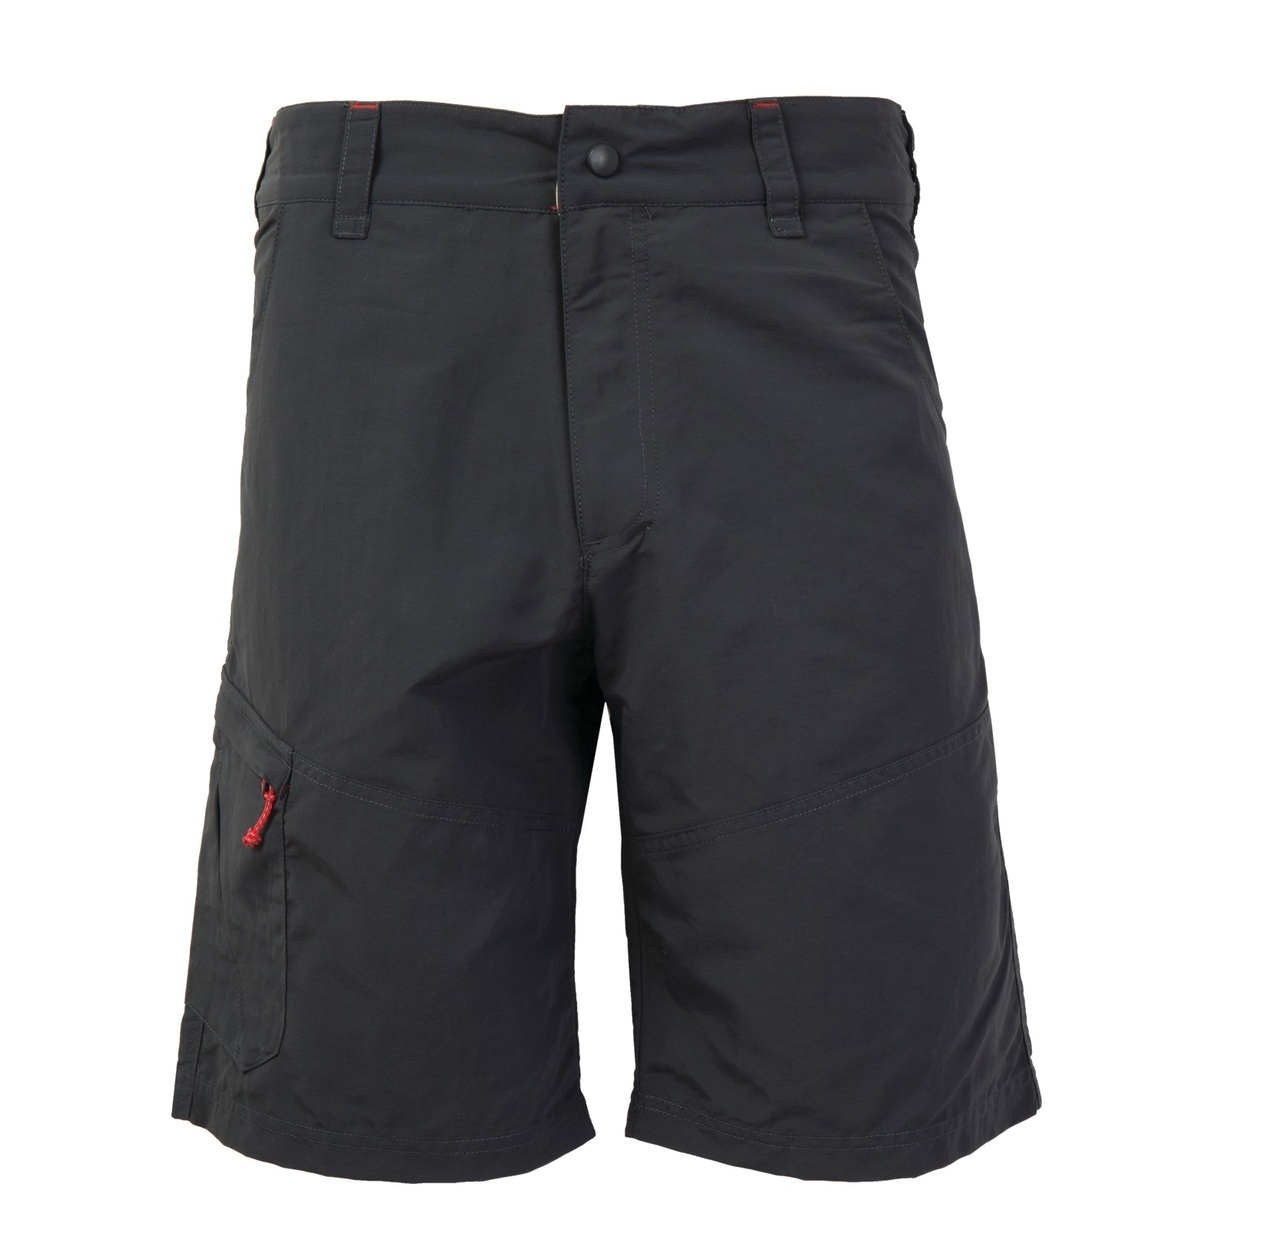 Shop All Sailing Shorts